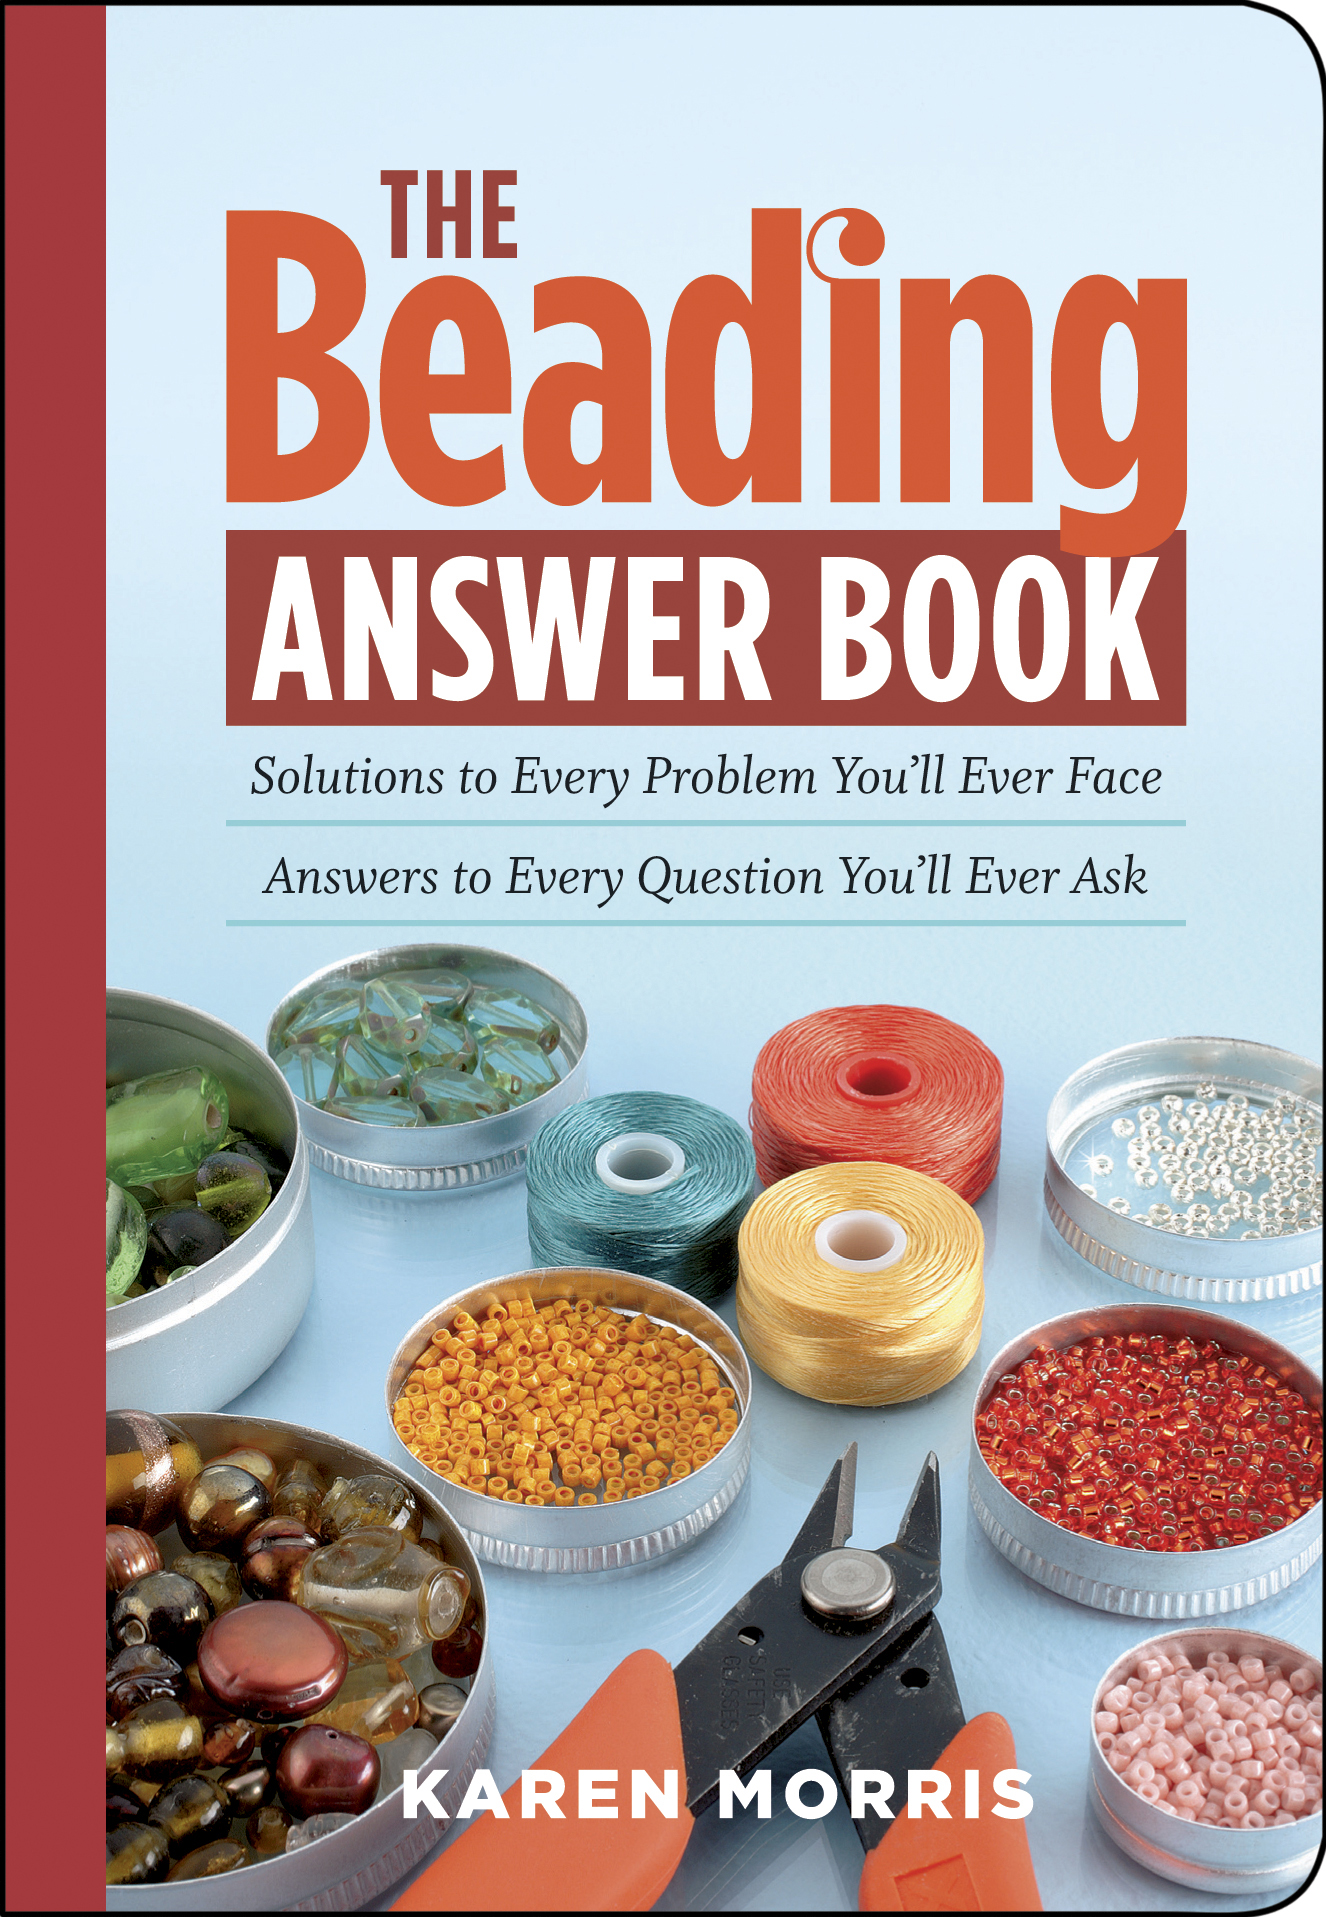 The Beading Answer Book Solutions to Every Problem You'll Ever Face; Answers to Every Question You'll Ever Ask - Karen Morris